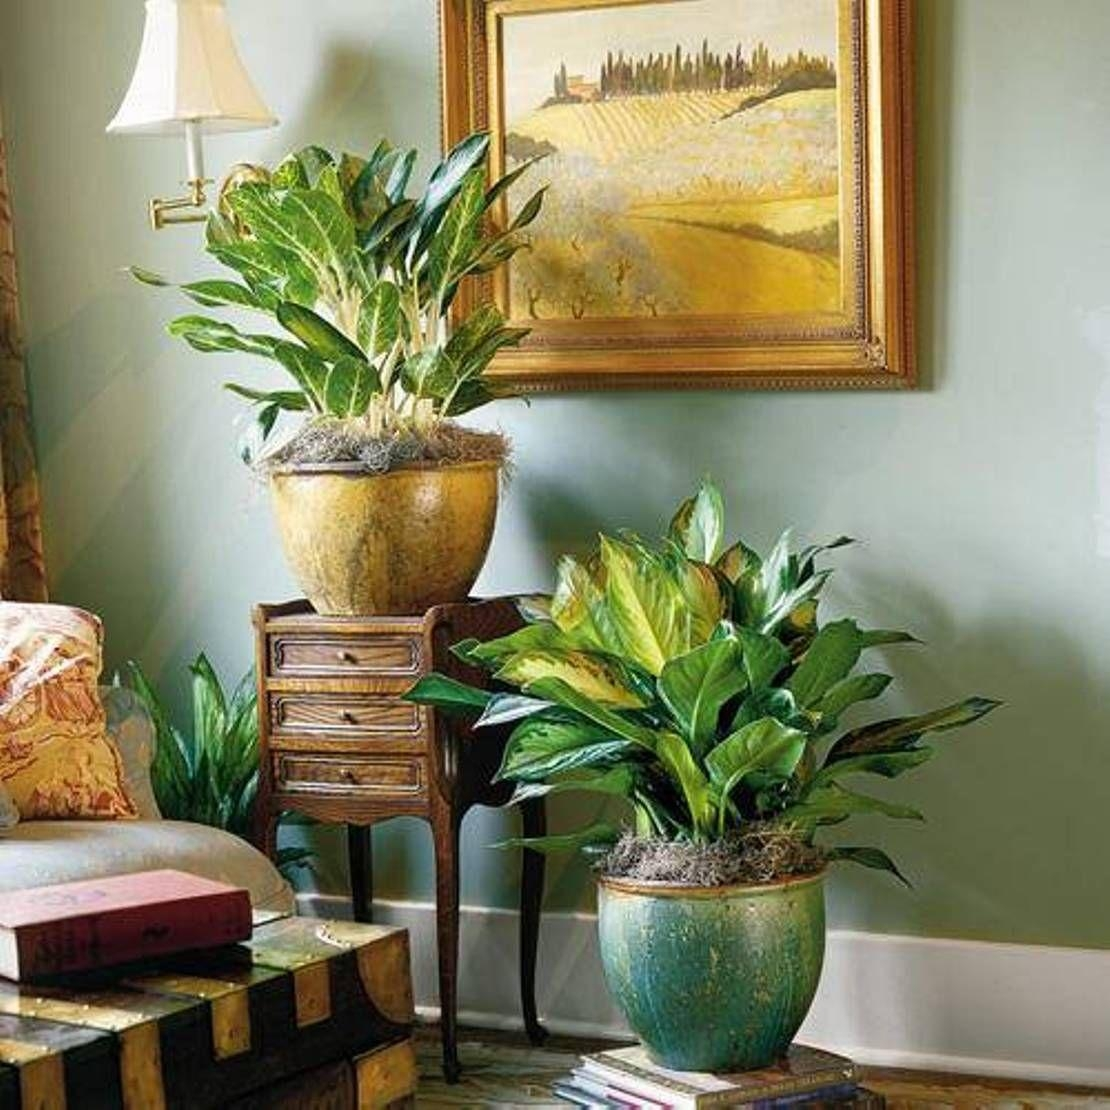 Living Room With Framed Wall Art And Chinese Evergeen Houseplants Intended For Exotic Wall Art (Image 17 of 20)